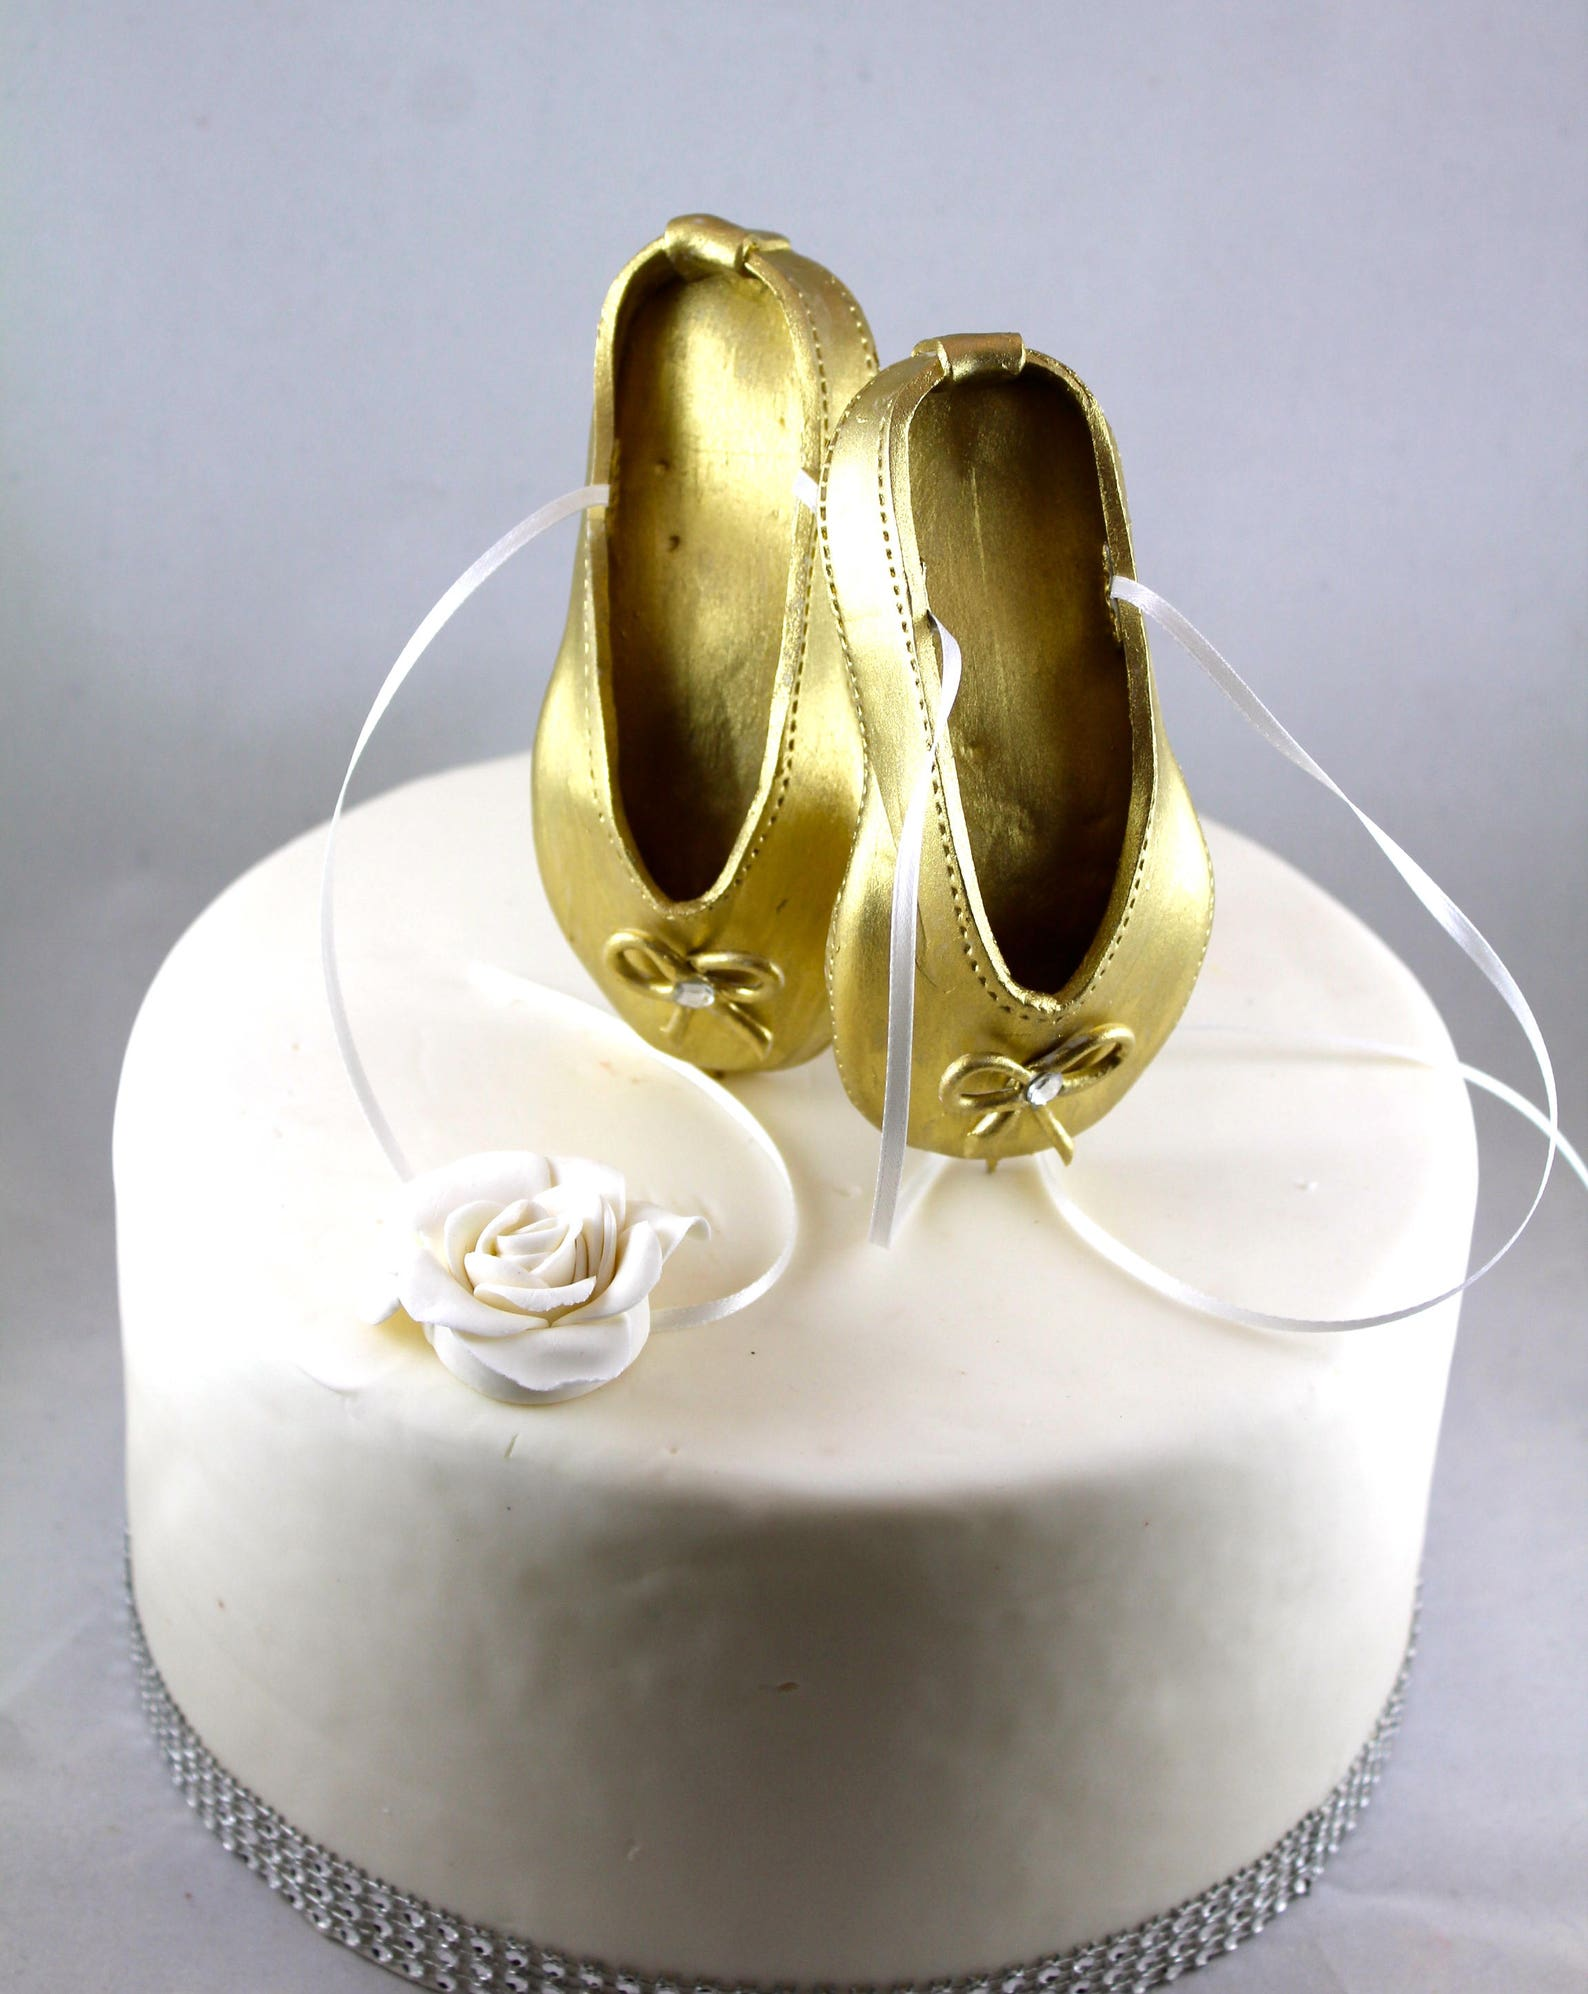 ballerina cake topper gold ballet shoes cake topper birthday cake topper ballerina cake decorations ballerina birthday decor bal